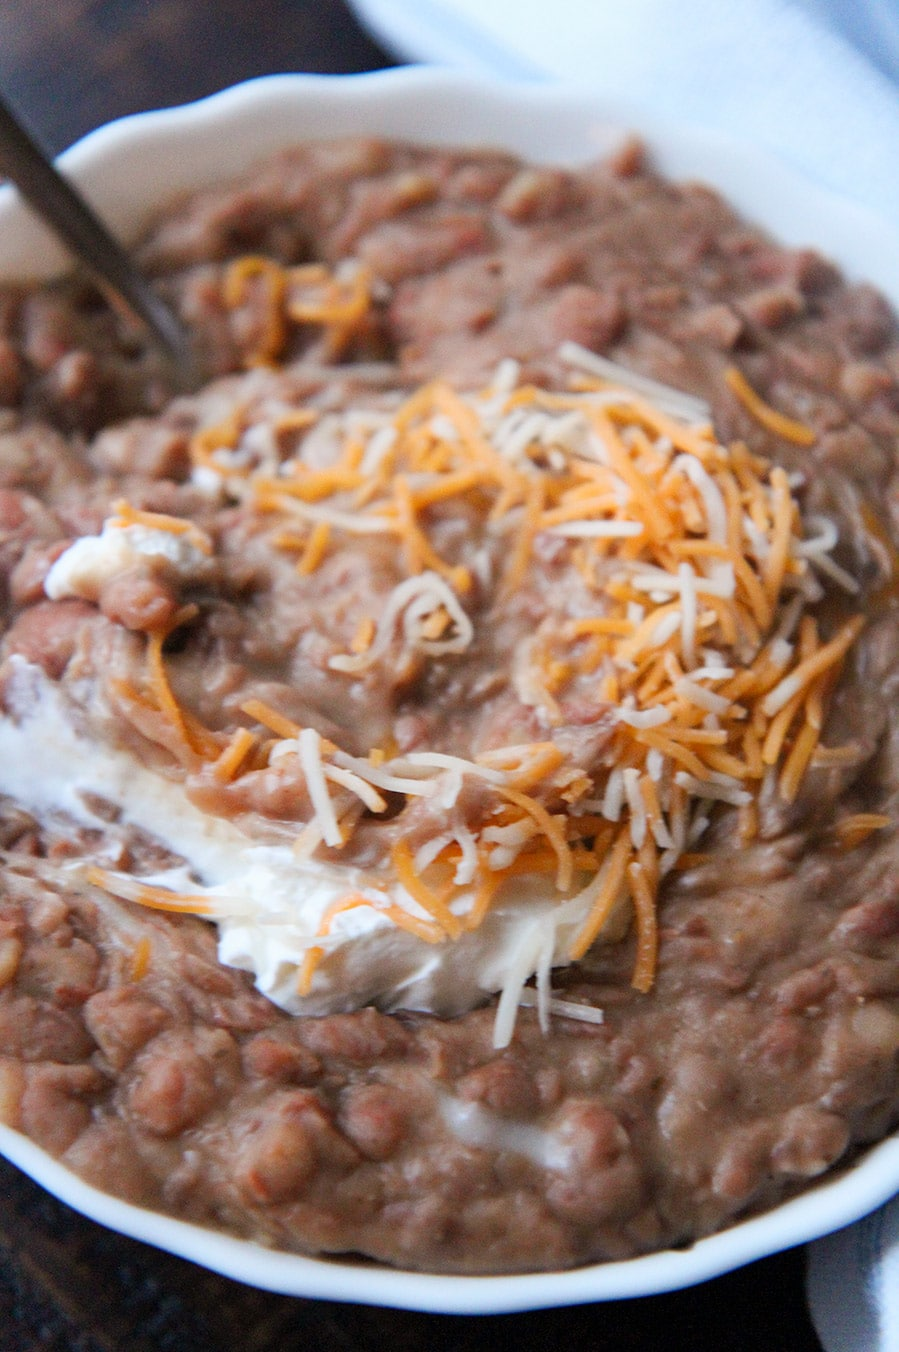 refried beans with sour cream, a spoon, and cheese in a small bowl up close.